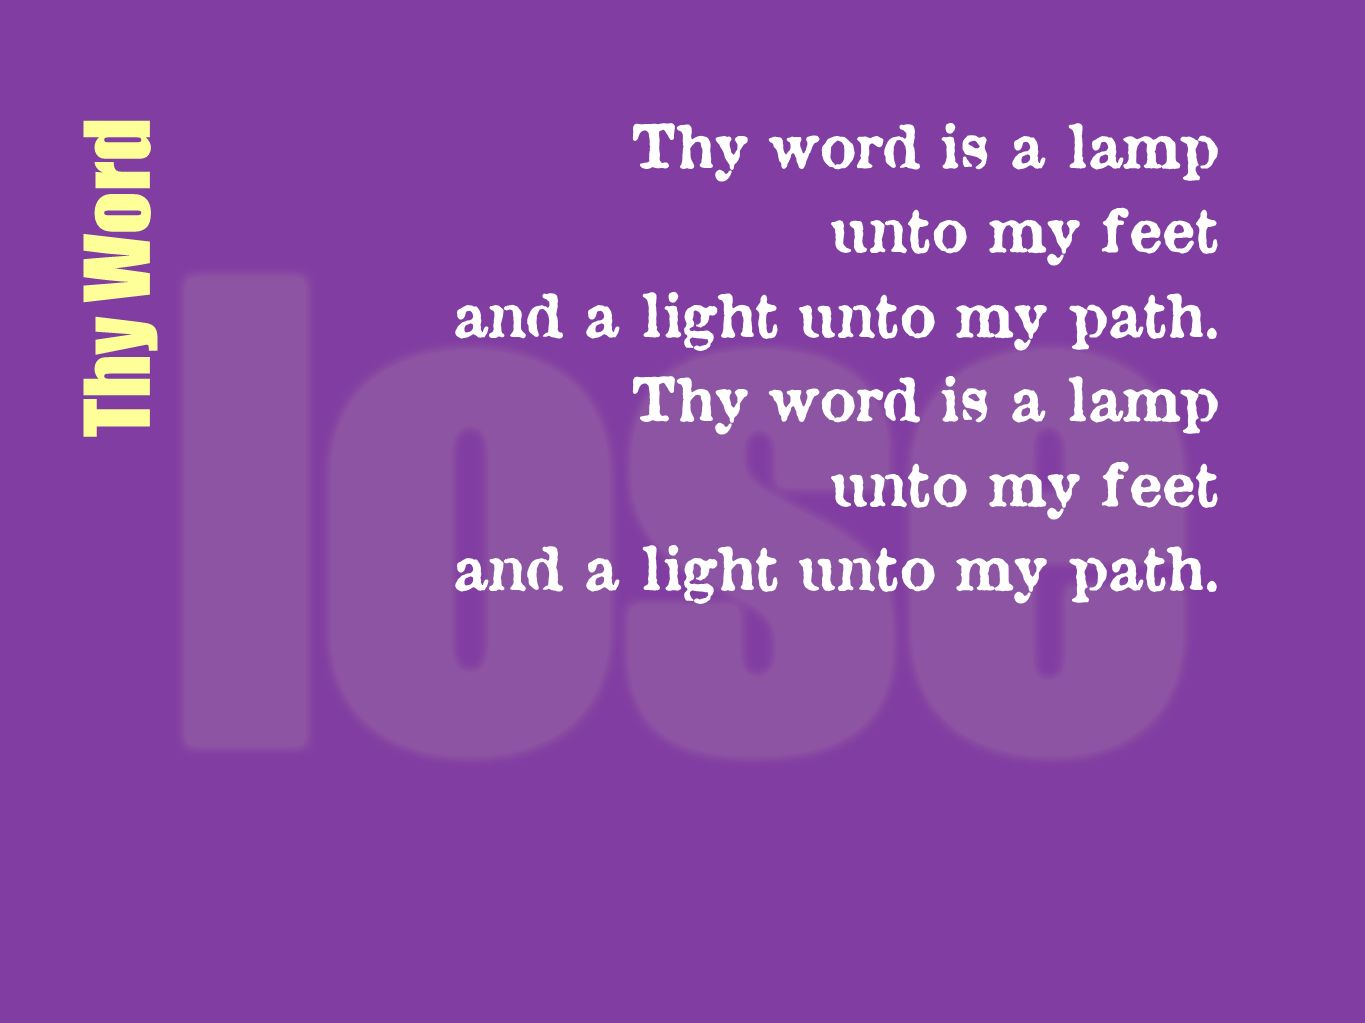 Thy Word Thy word is a lamp unto my feet and a light unto my path. Thy word is a lamp unto my feet and a light unto my path.